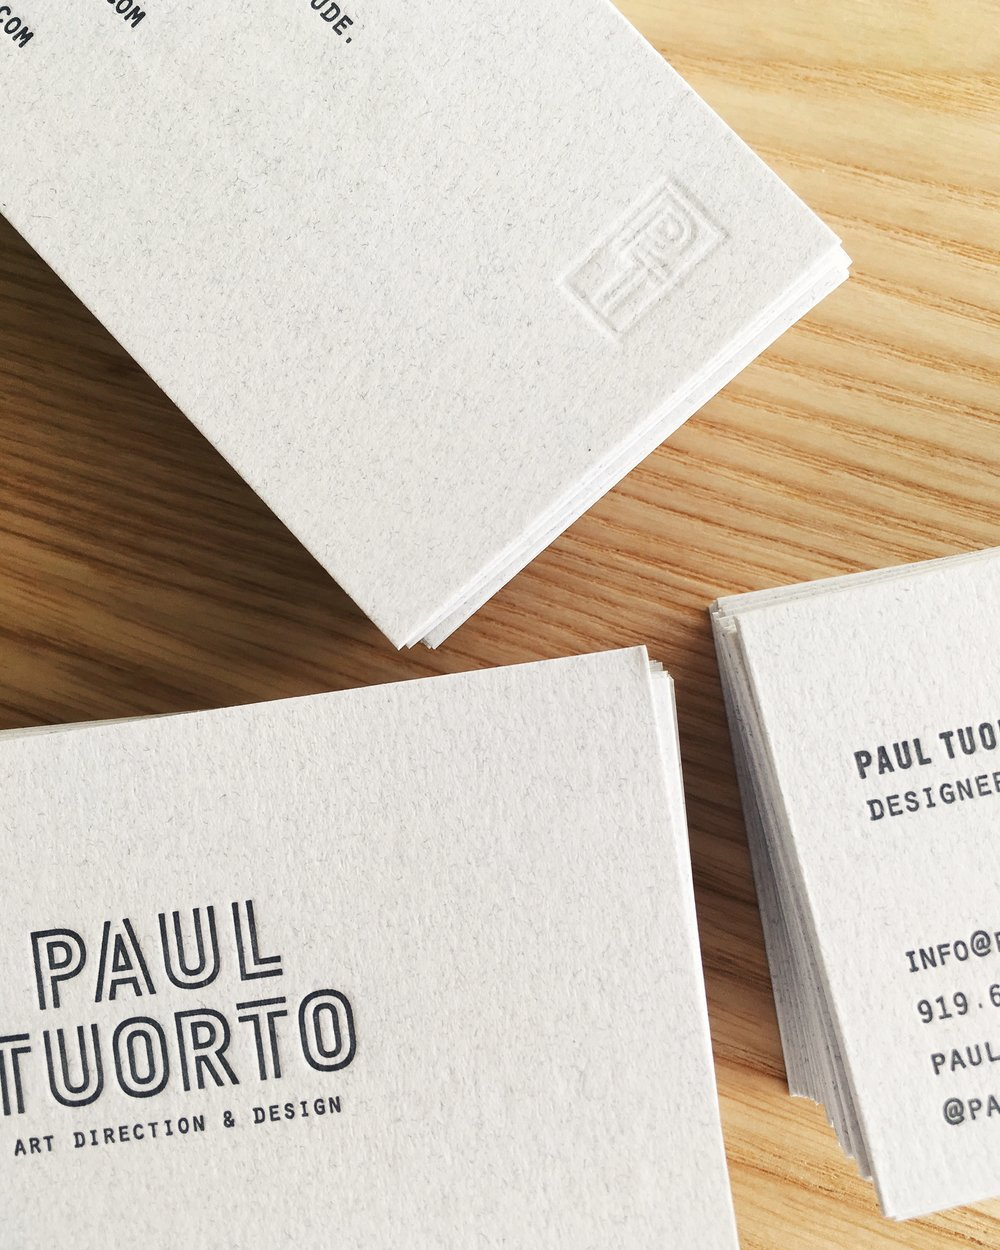 Letterpress by Good South / Paul Tuorto Letterpress Business Card